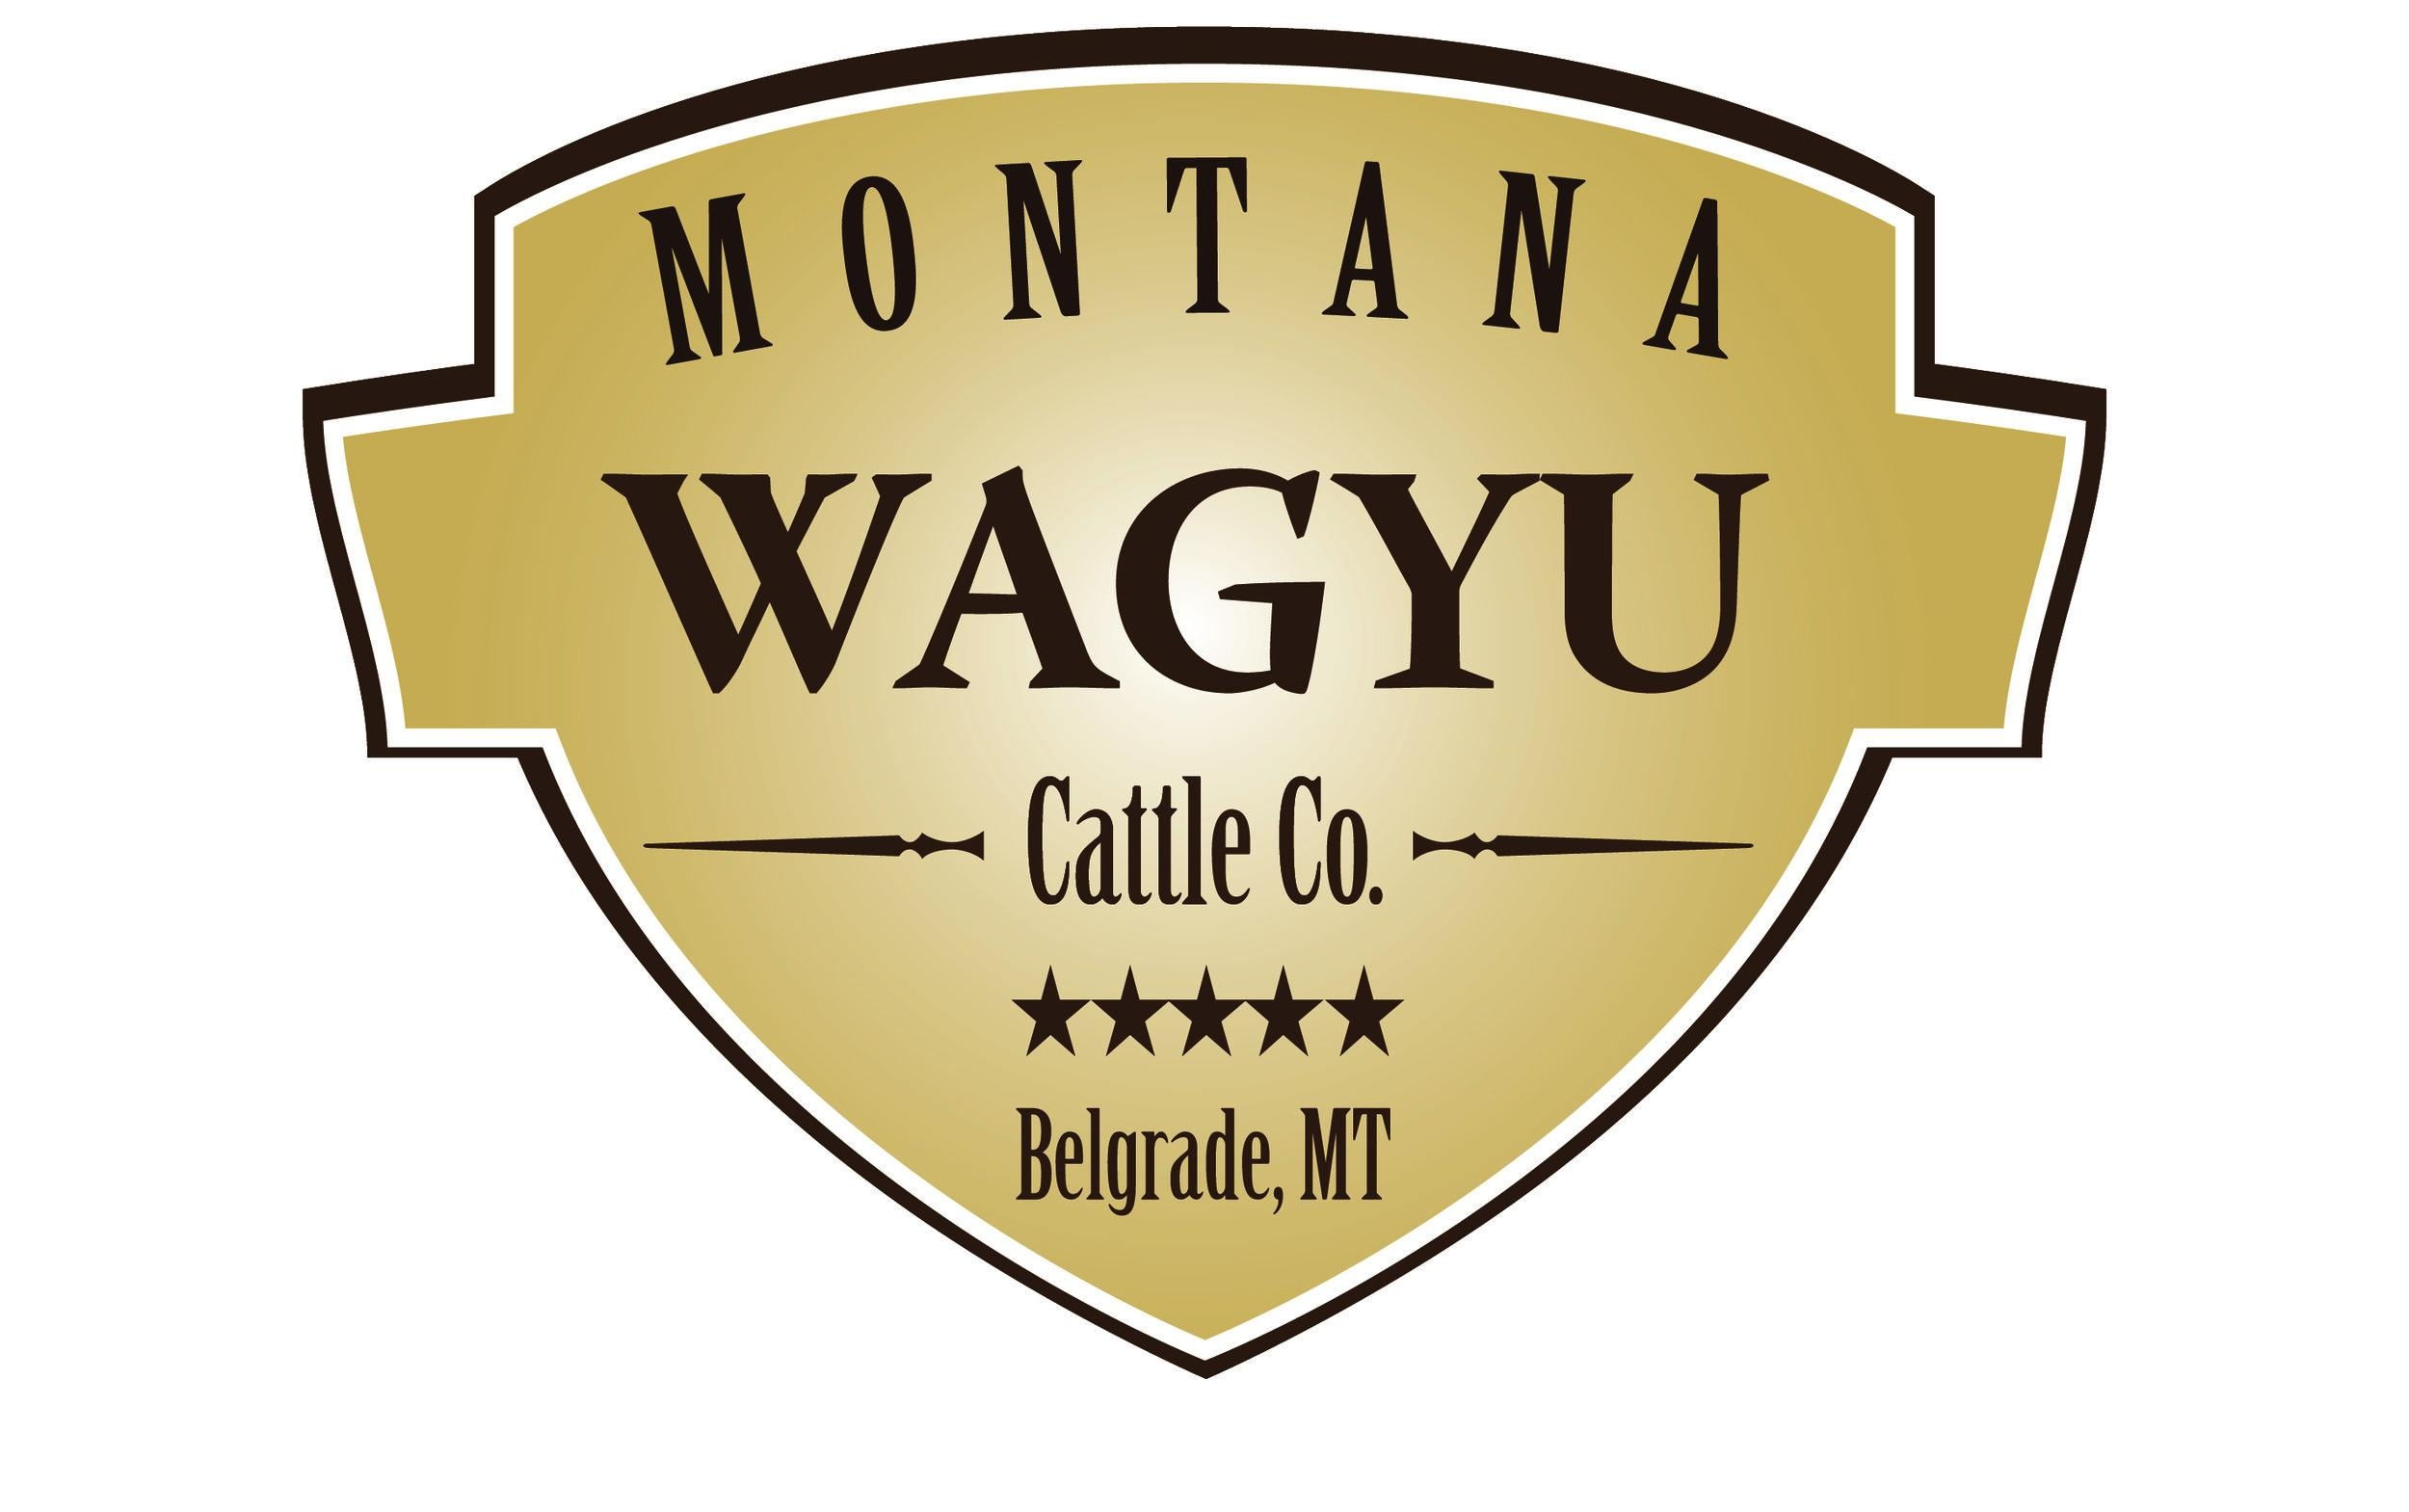 Image Provided by Montana Wagyu - Beef For the Diserning Cowboy